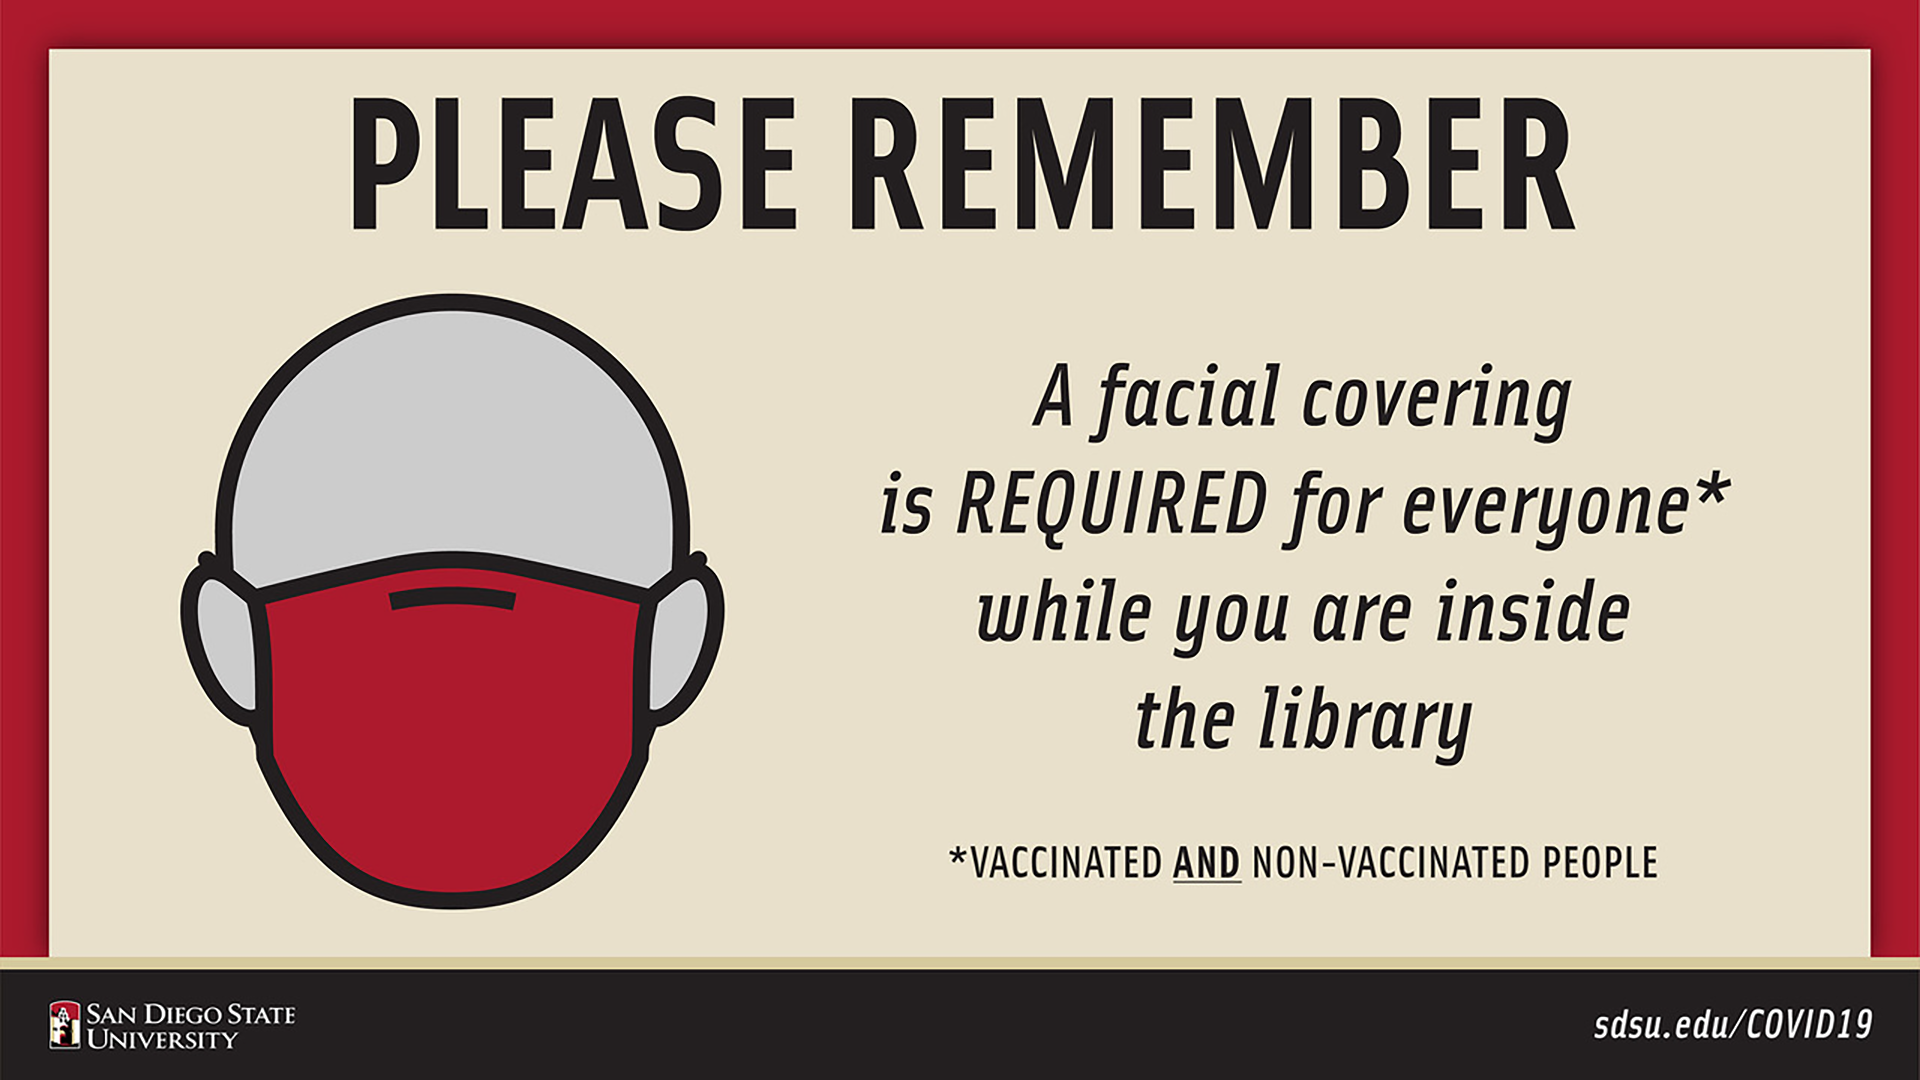 Please remember a facial covering is required for everyone